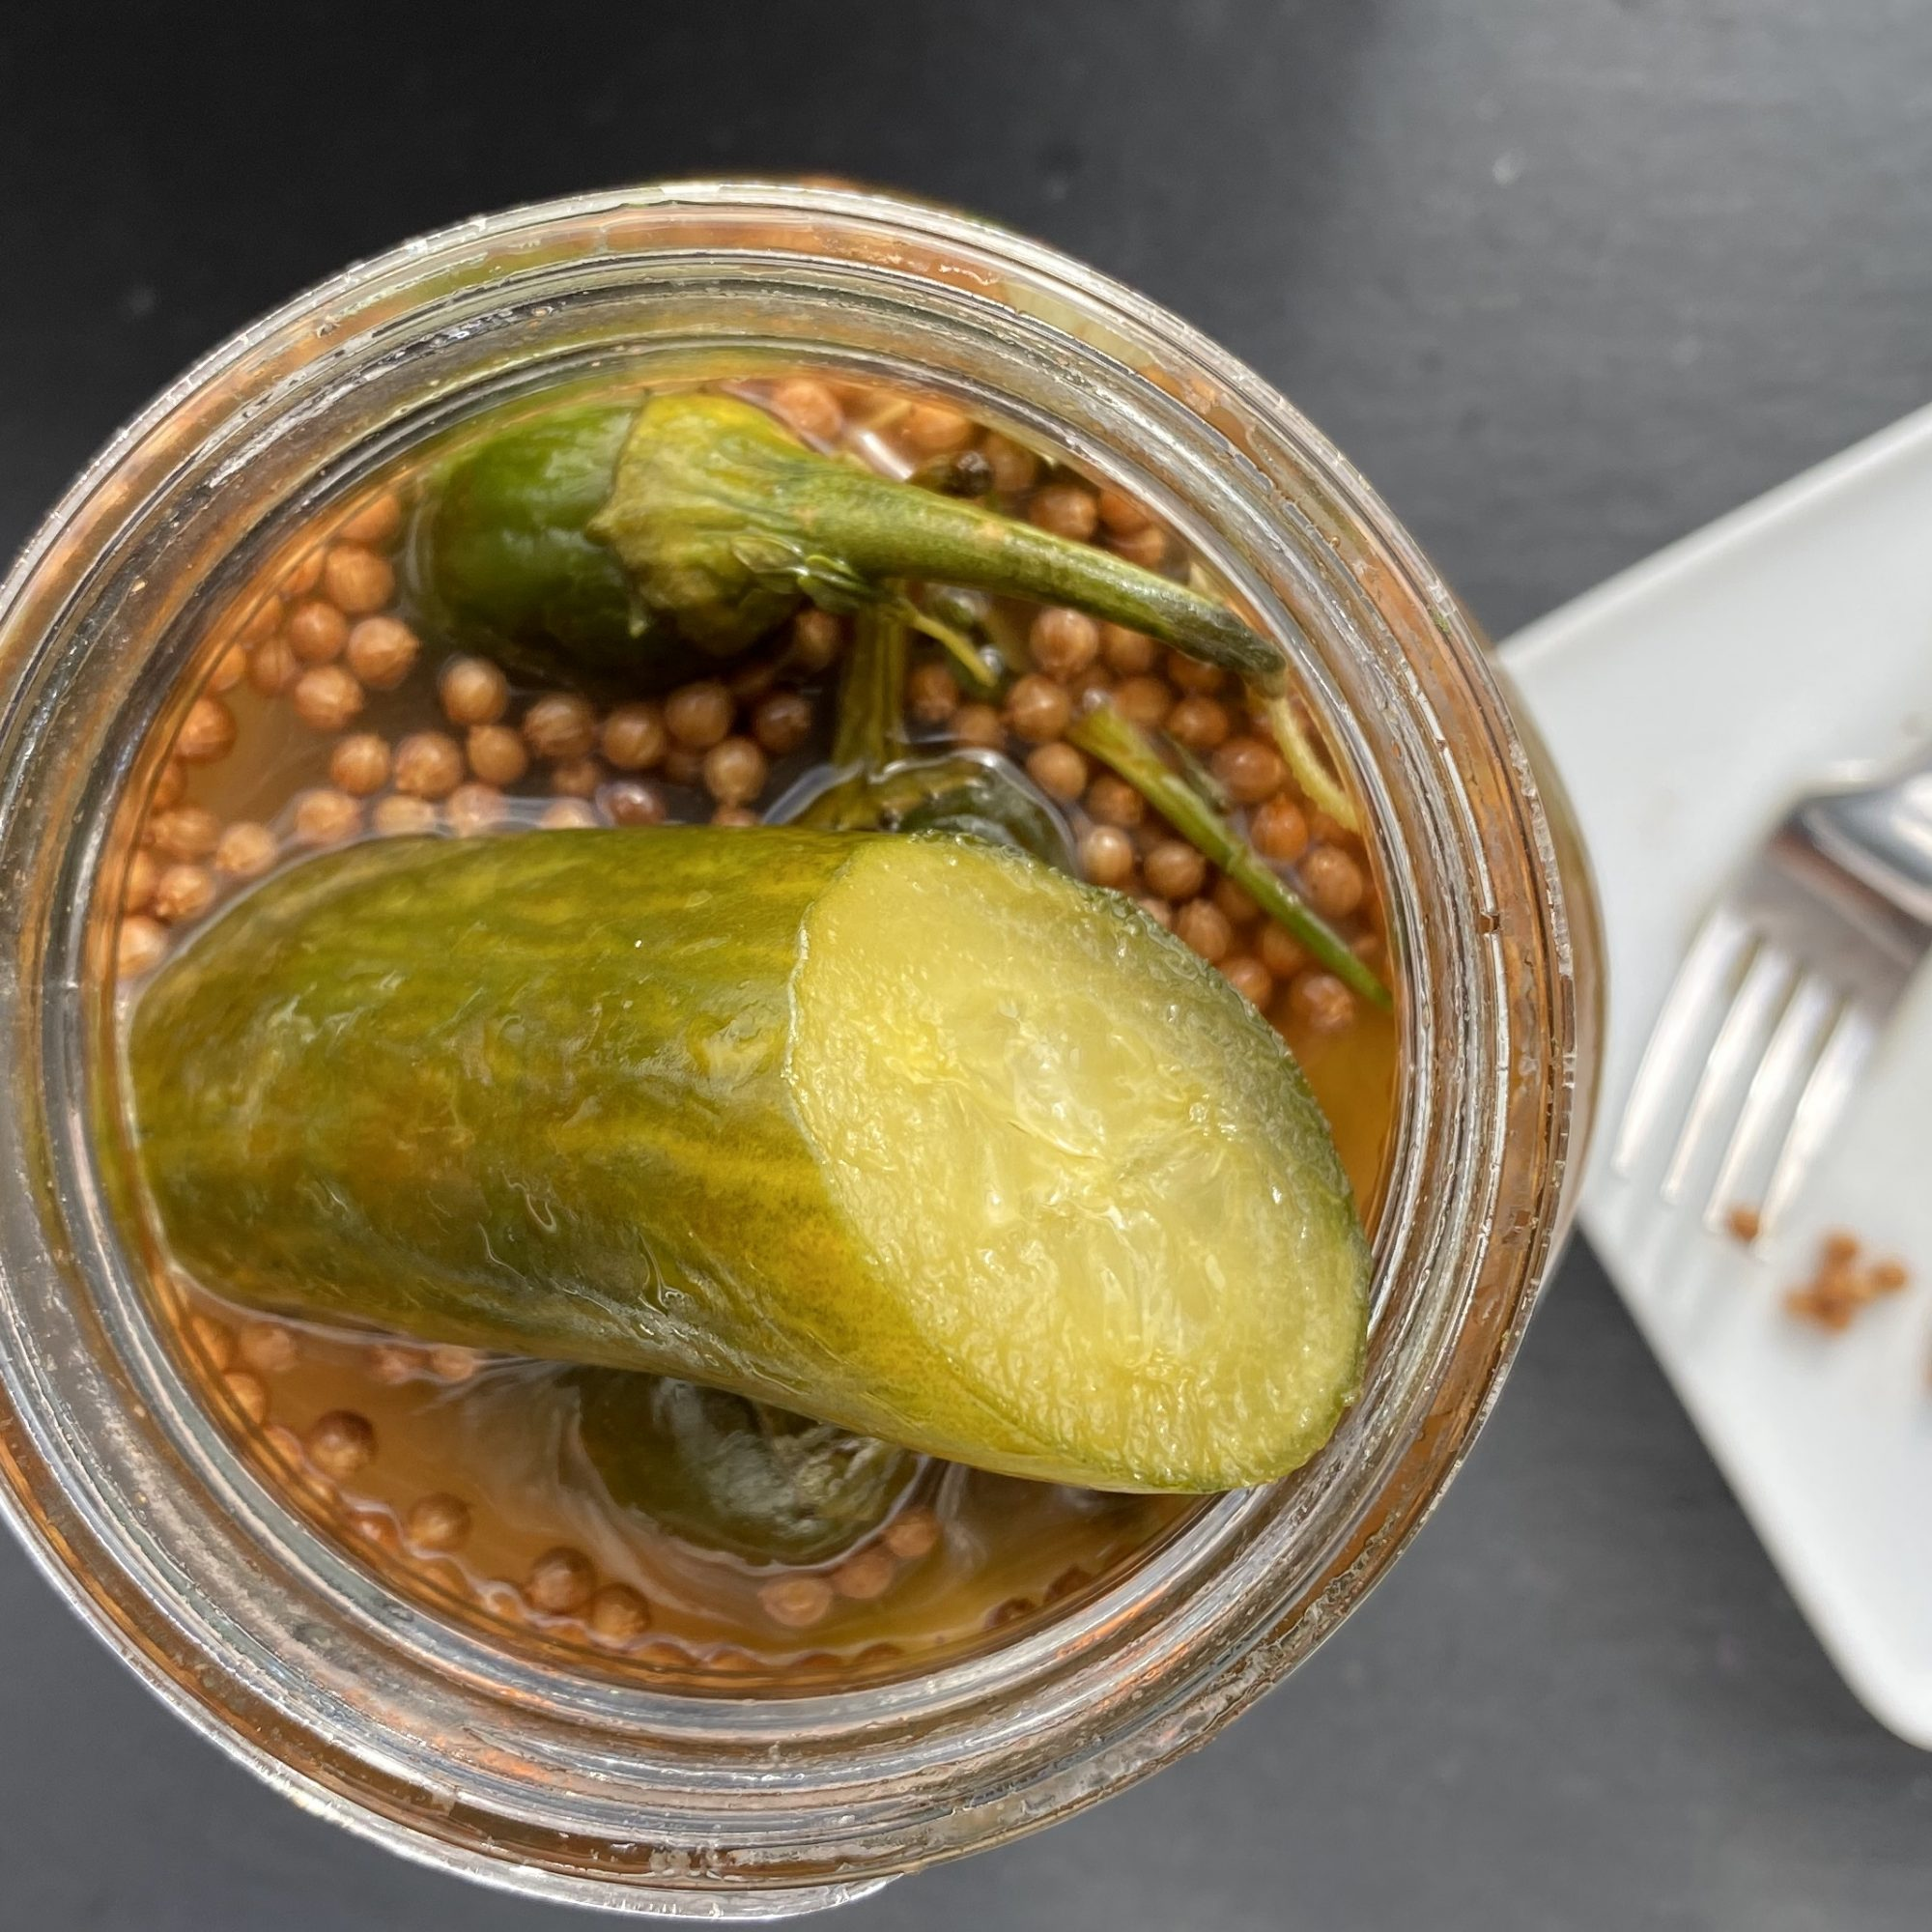 """These are half-sour pickles spiced with harissa and all the traditional components of Turkish za'atar,"" says veithk. ""The toasted cardamom adds a citrusy finish to these very bold pickles. After 10 days, they will continue to improve with age."""